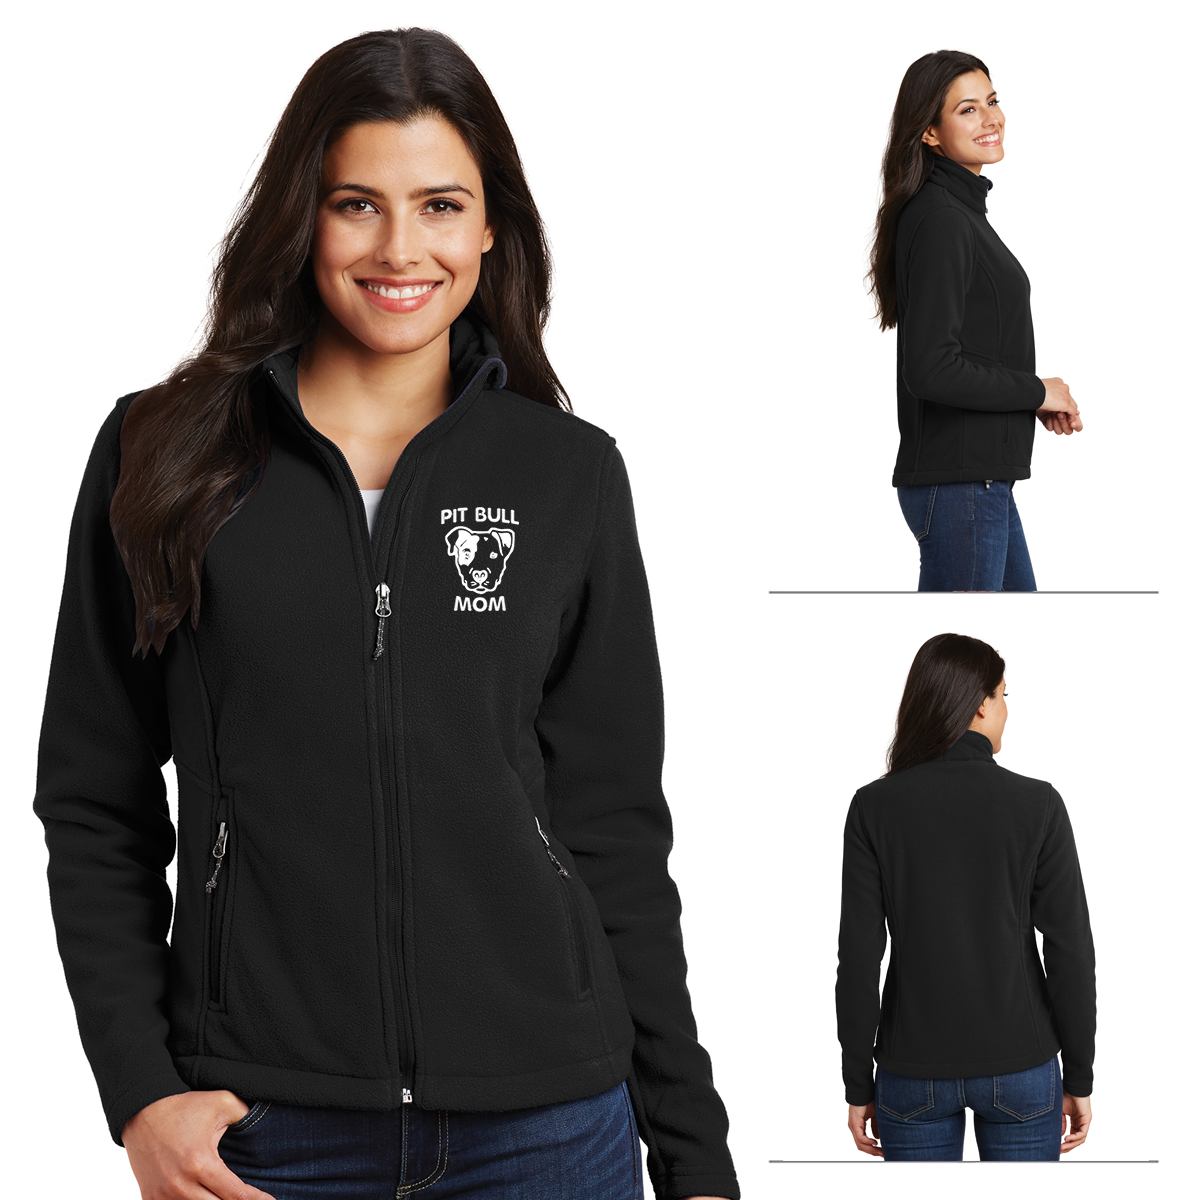 Ladies Microfleece Pitbull Mom Jacket